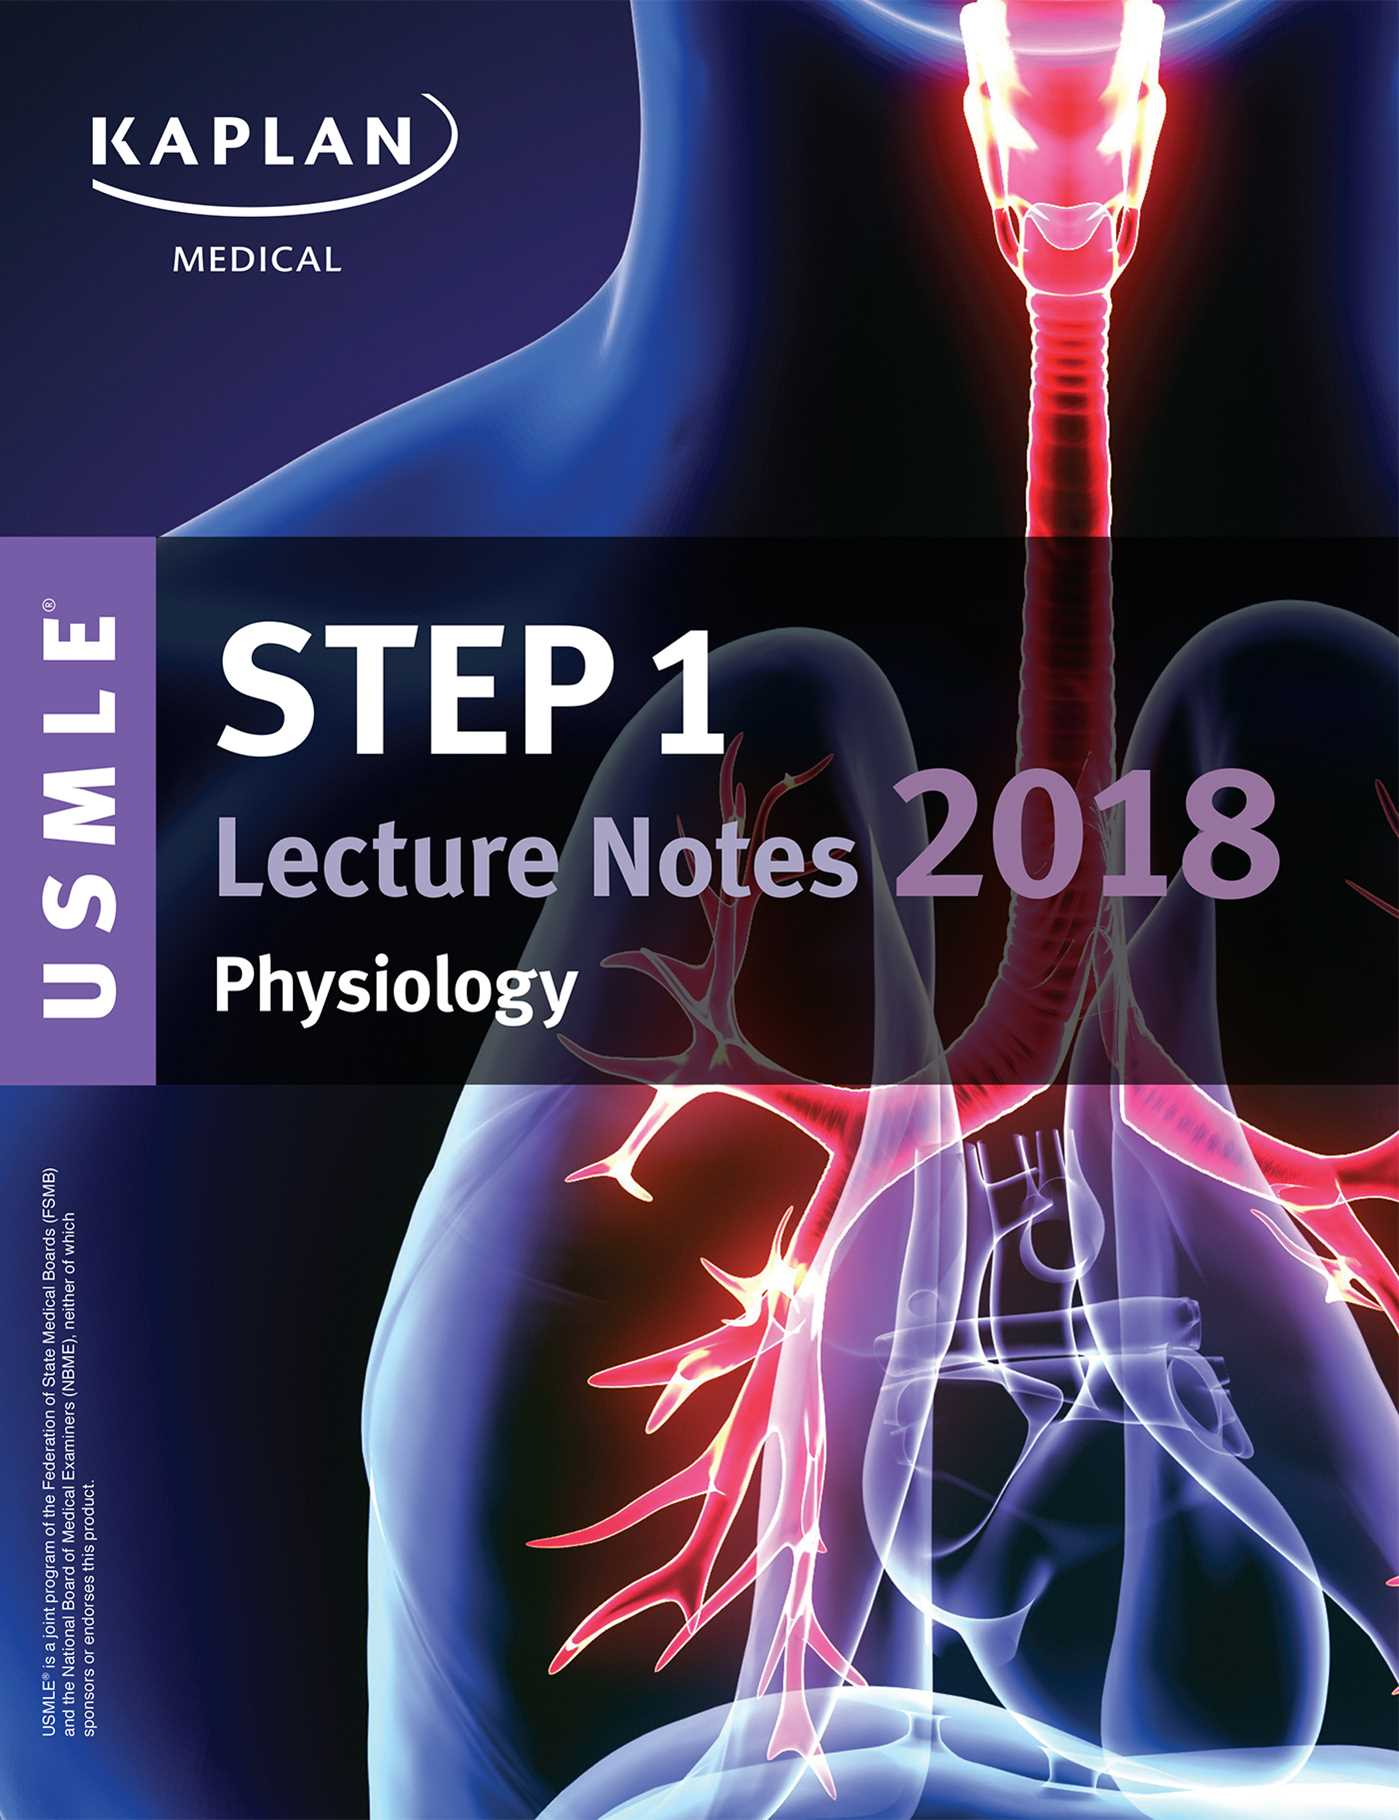 Usmle step 1 lecture notes 2018 physiology 9781506221205 hr